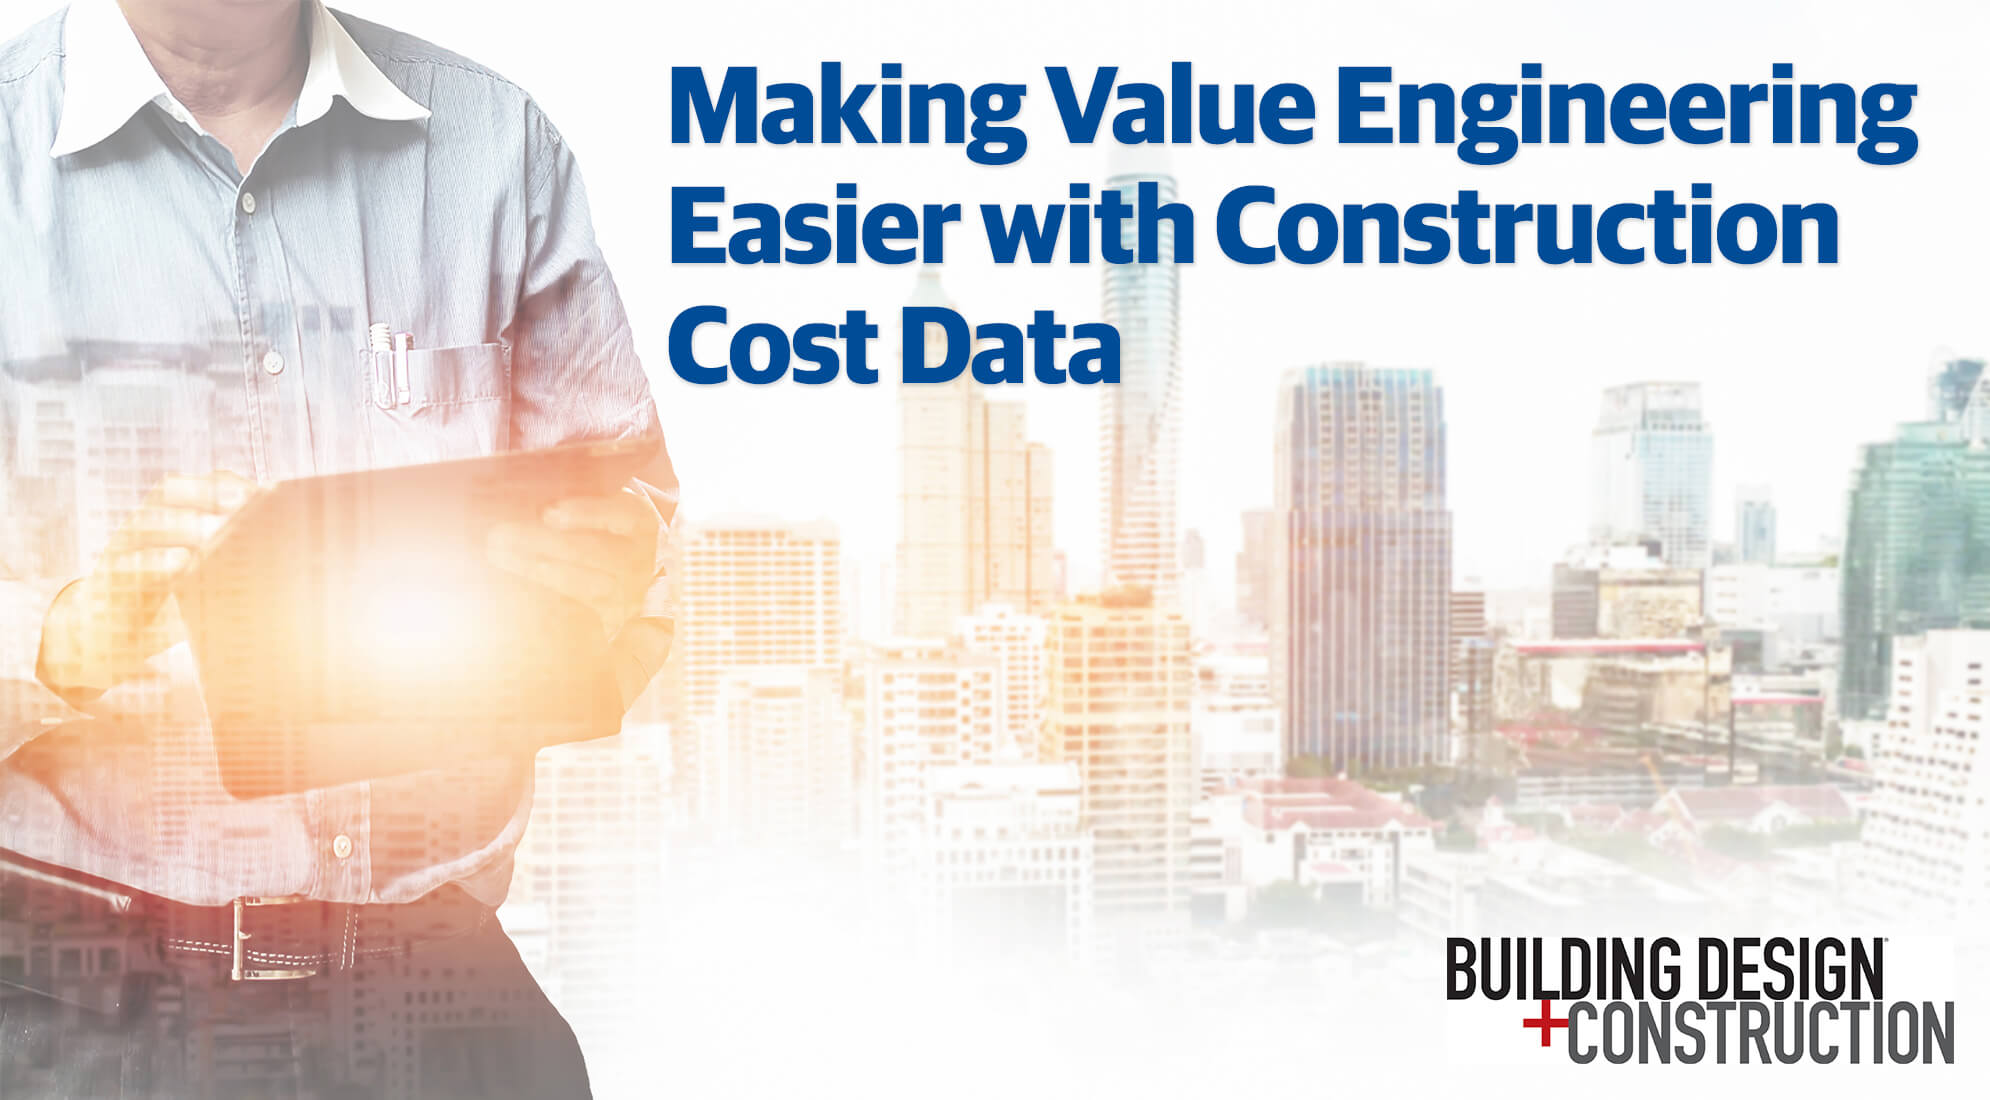 Making Value Engineering Easier with Construction Cost Data